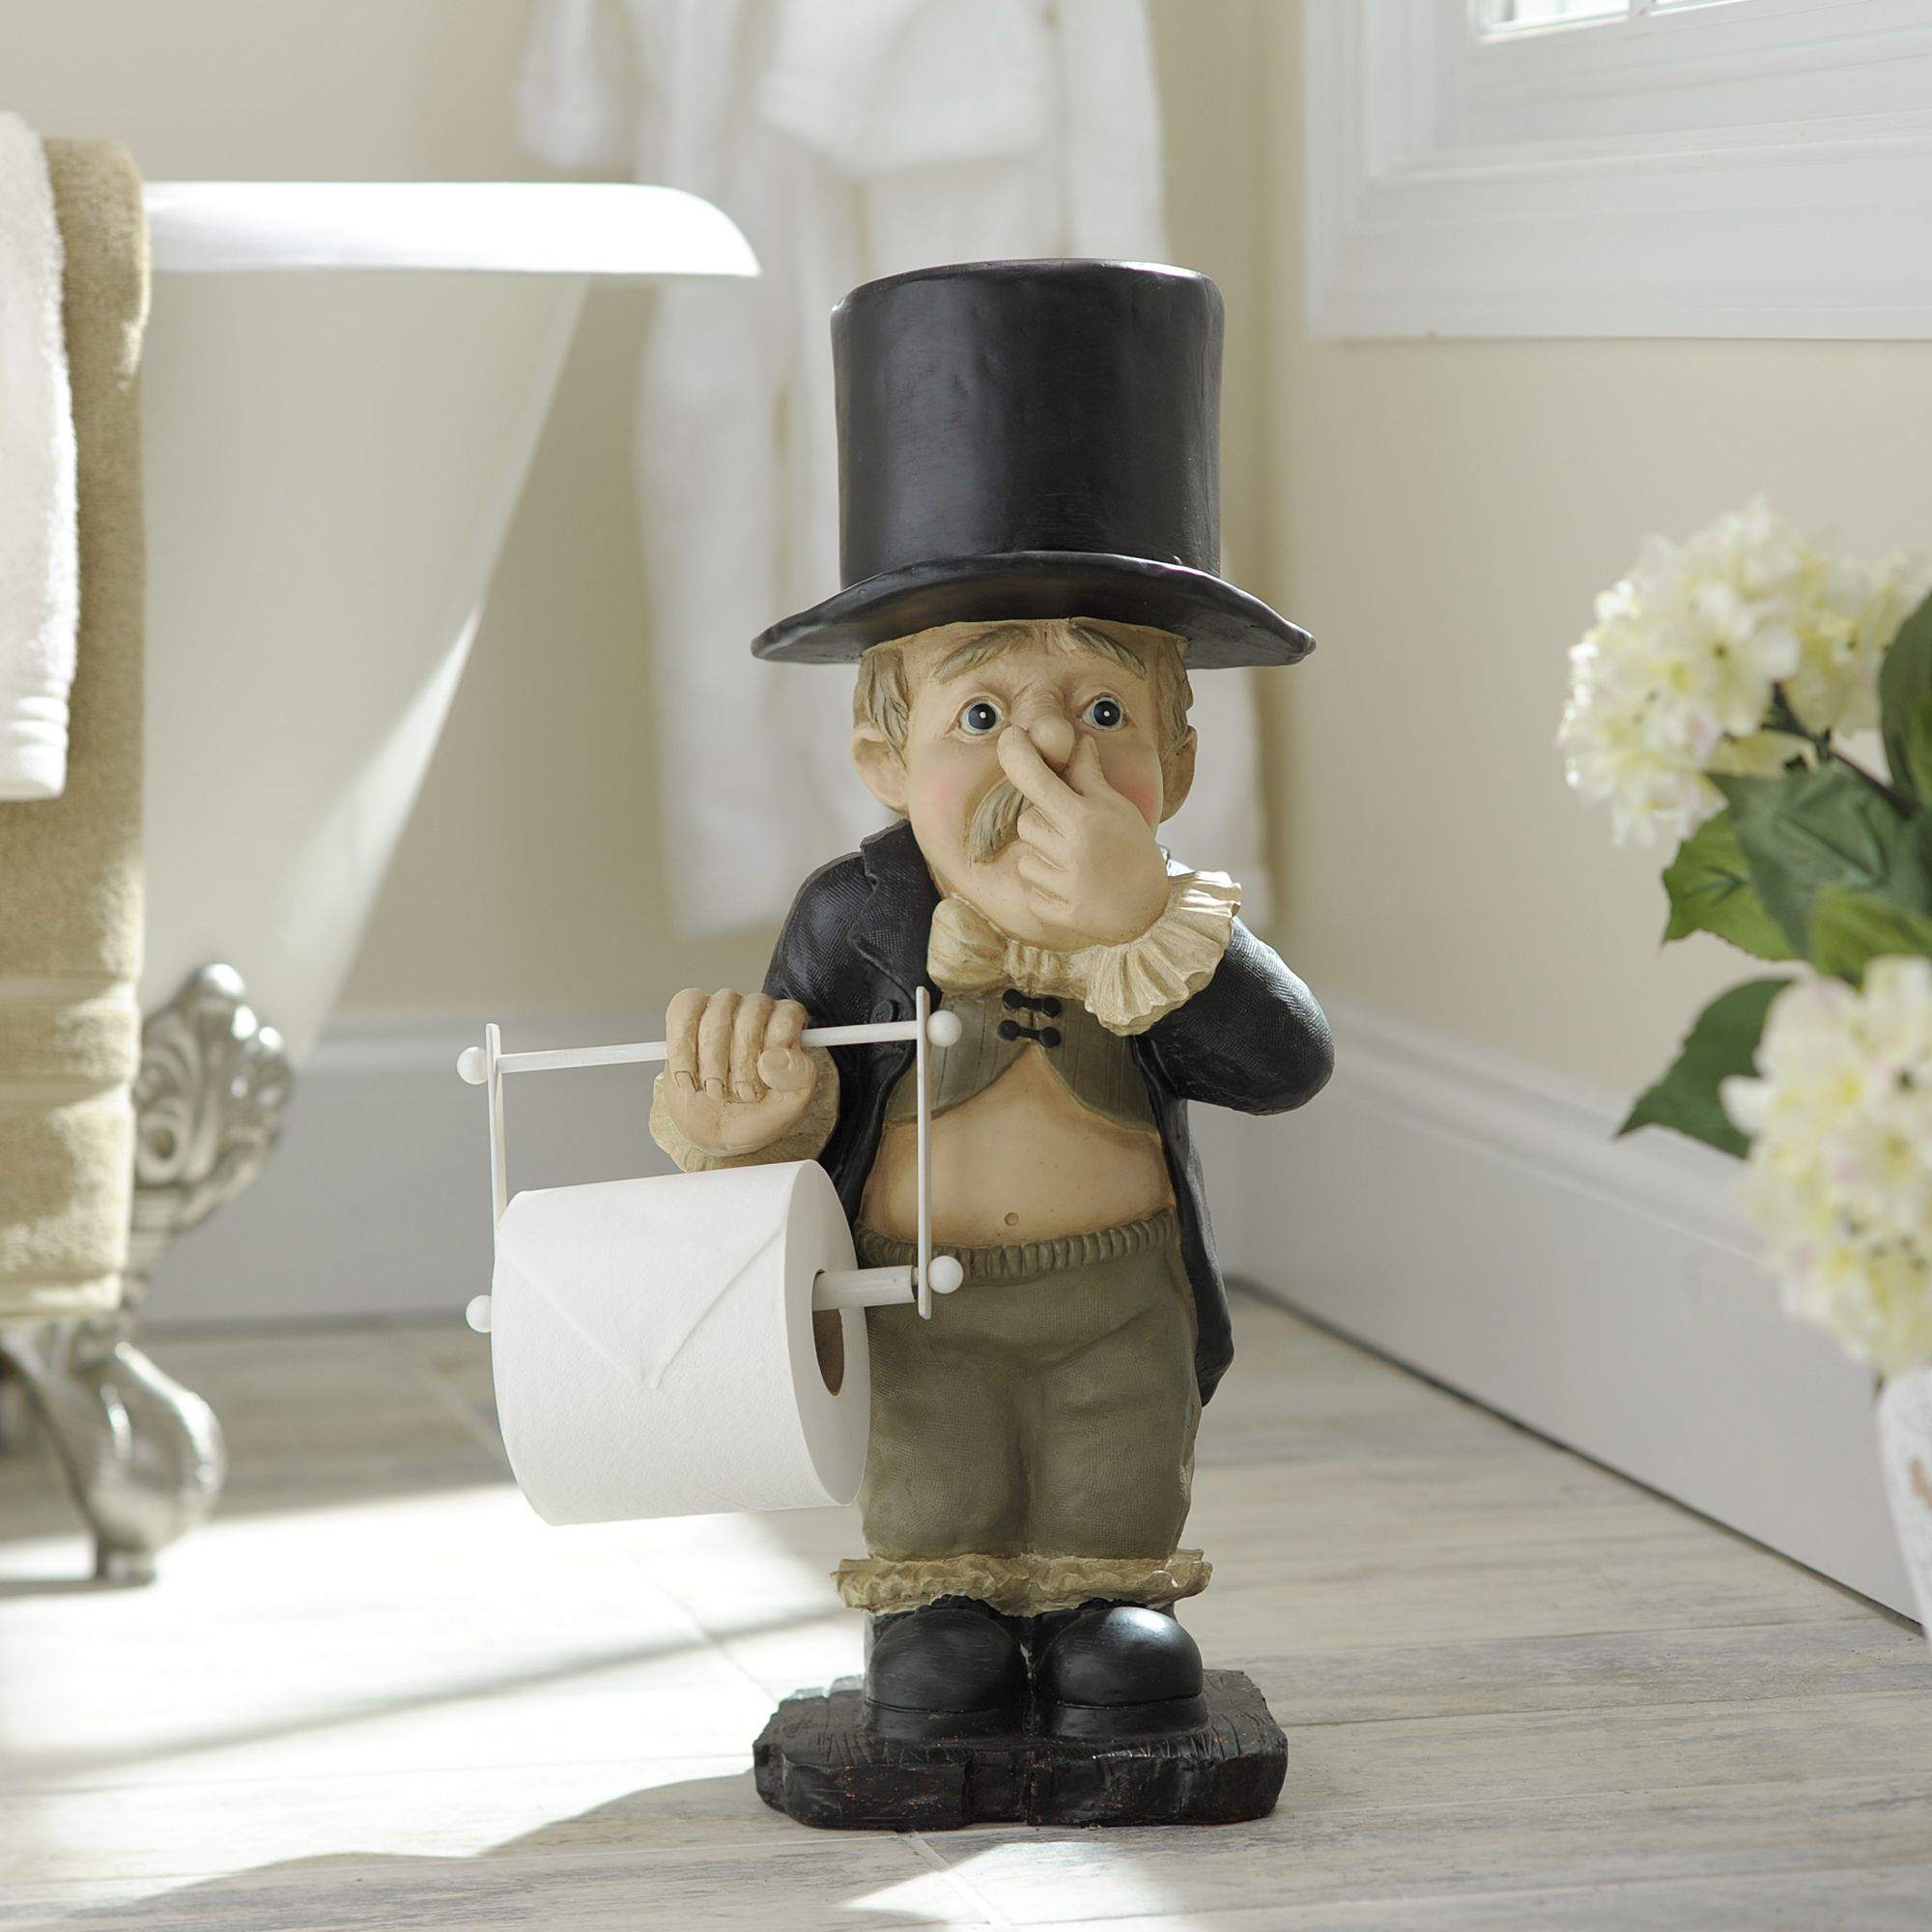 Funny Toilet Paper Stinky Butler Toilet Paper Holder Toilet Paper Holders